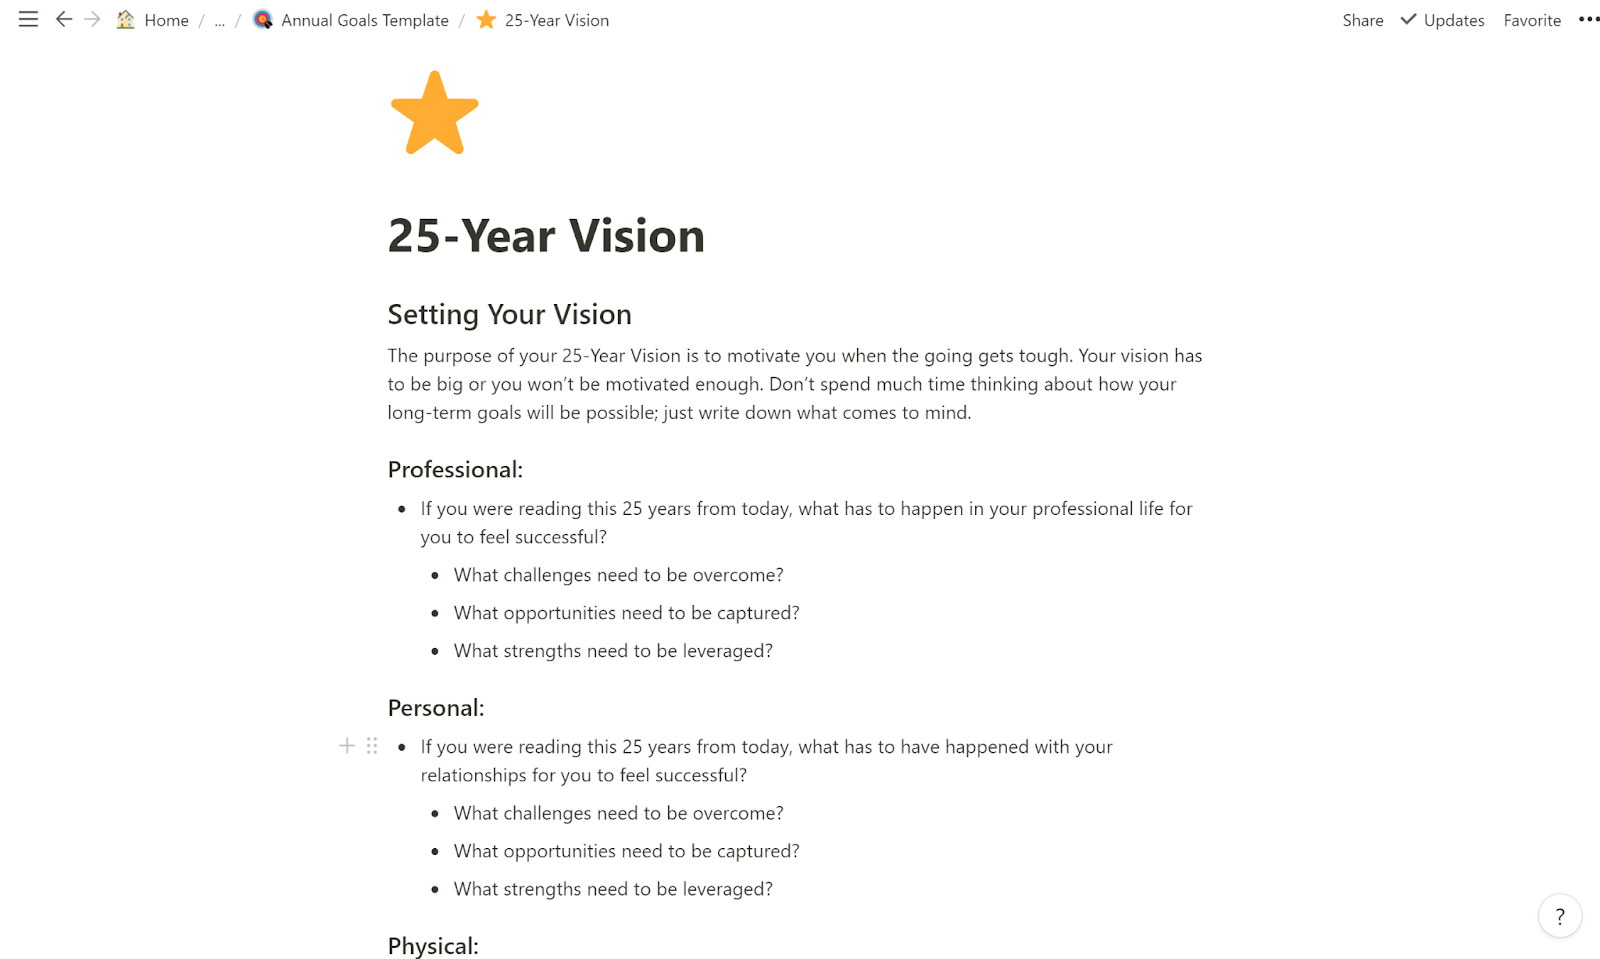 25-year vision Notion page